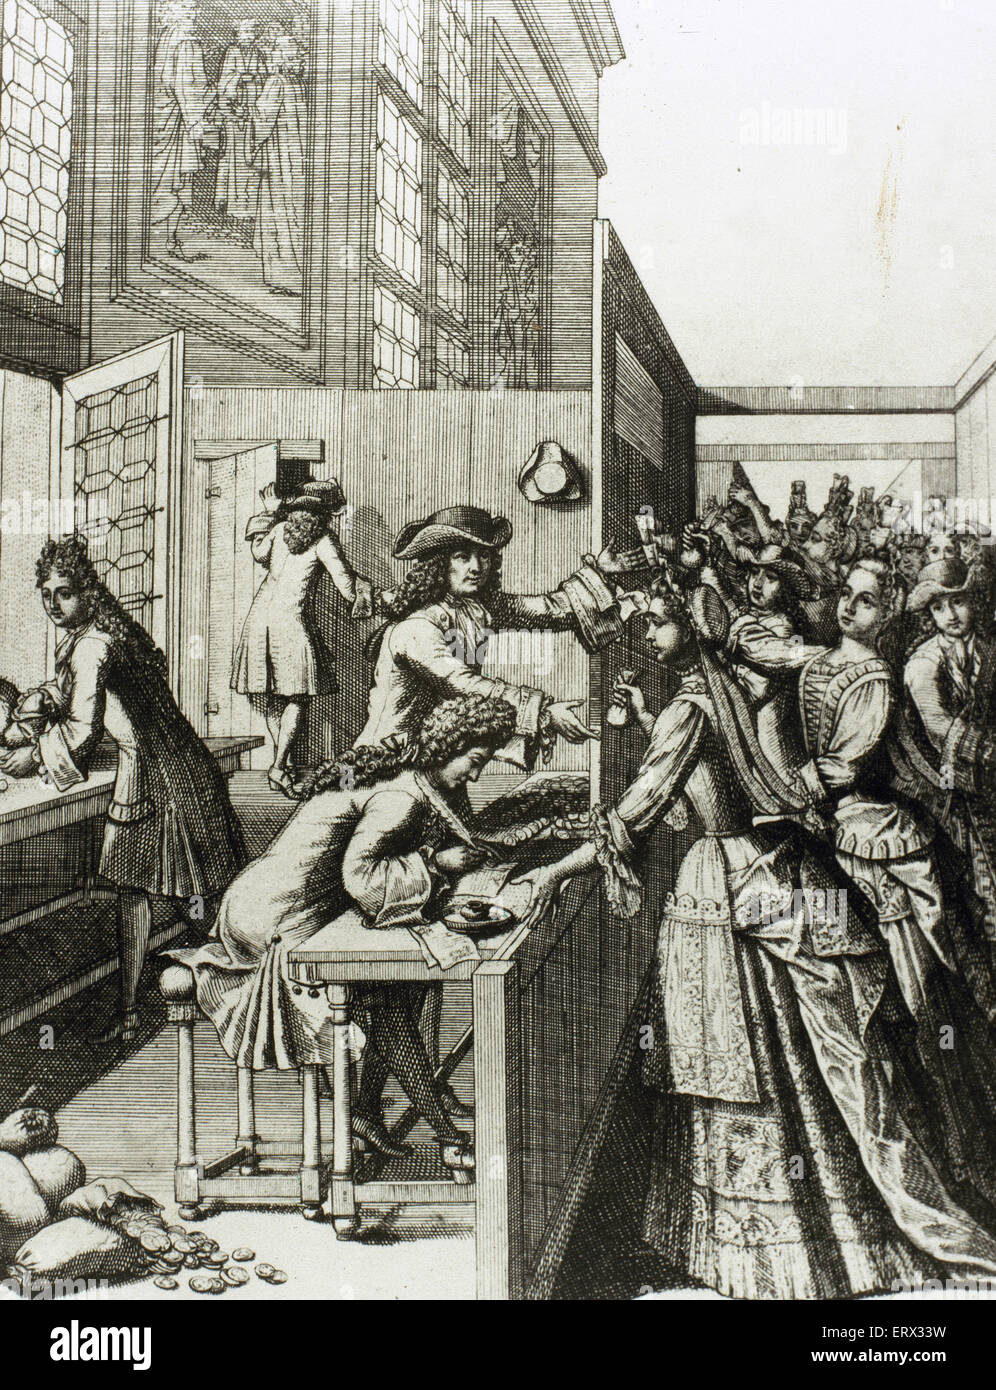 History of France. 18th century. Tributes to the King. The people of France paying their taxes. Engraving. - Stock Image